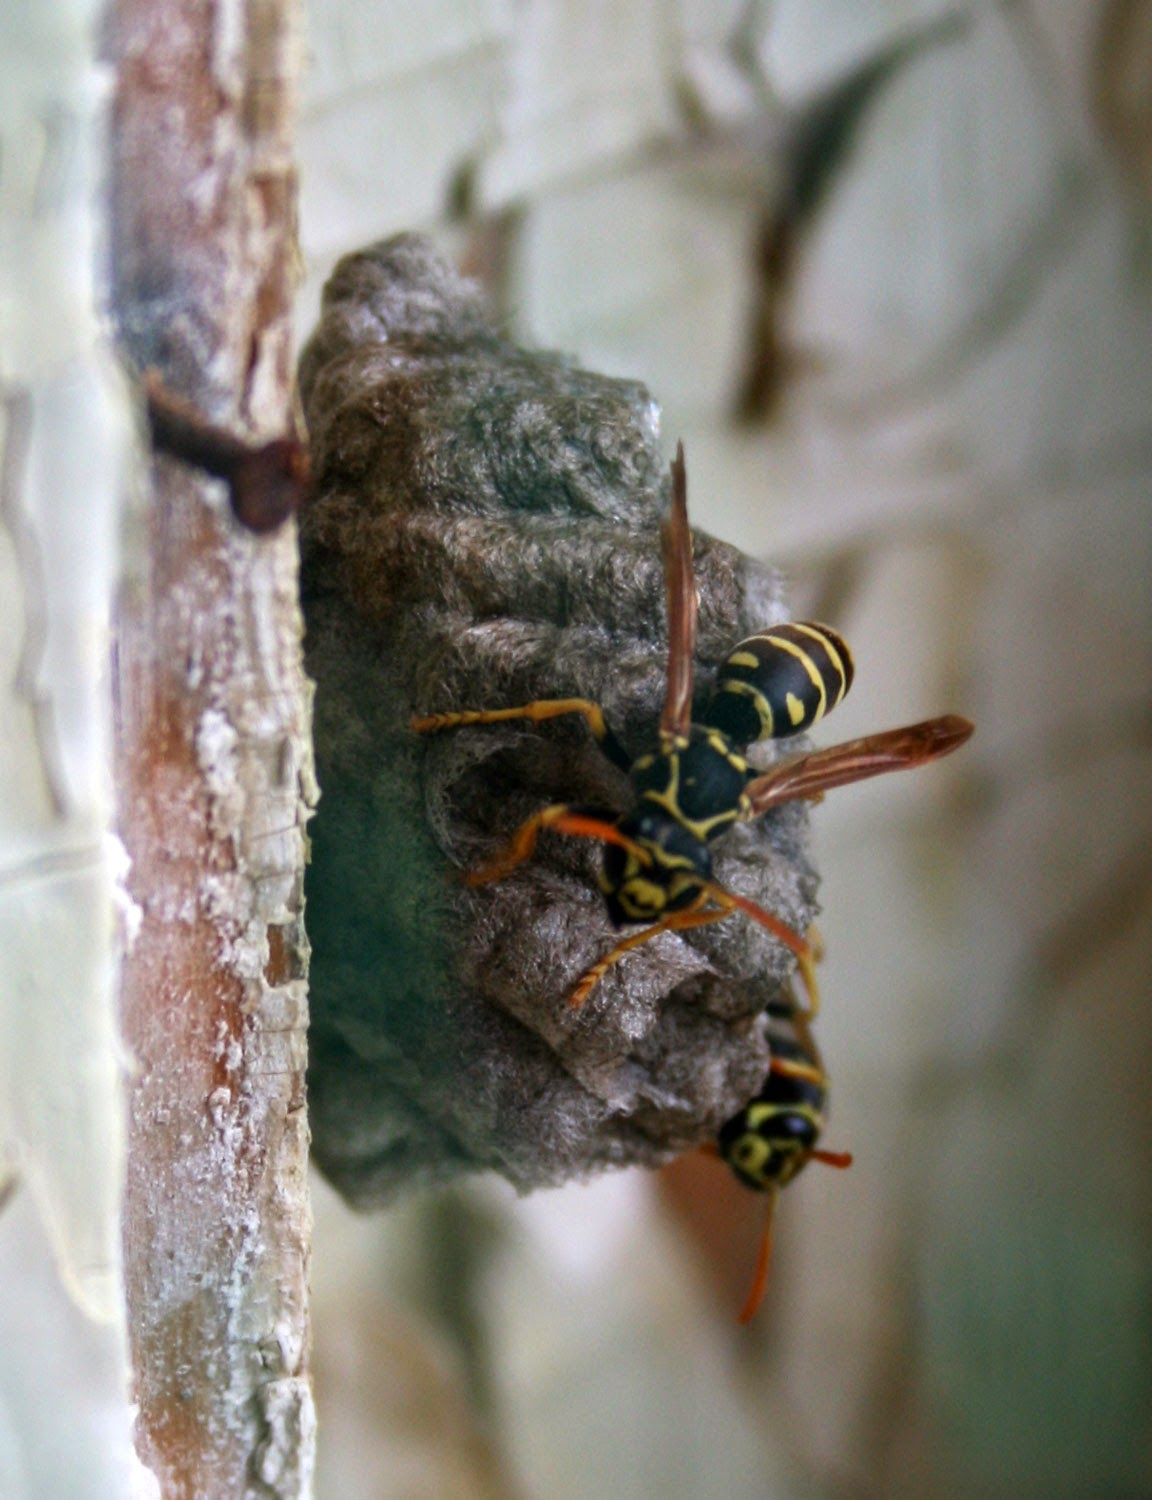 Wasps with their nest